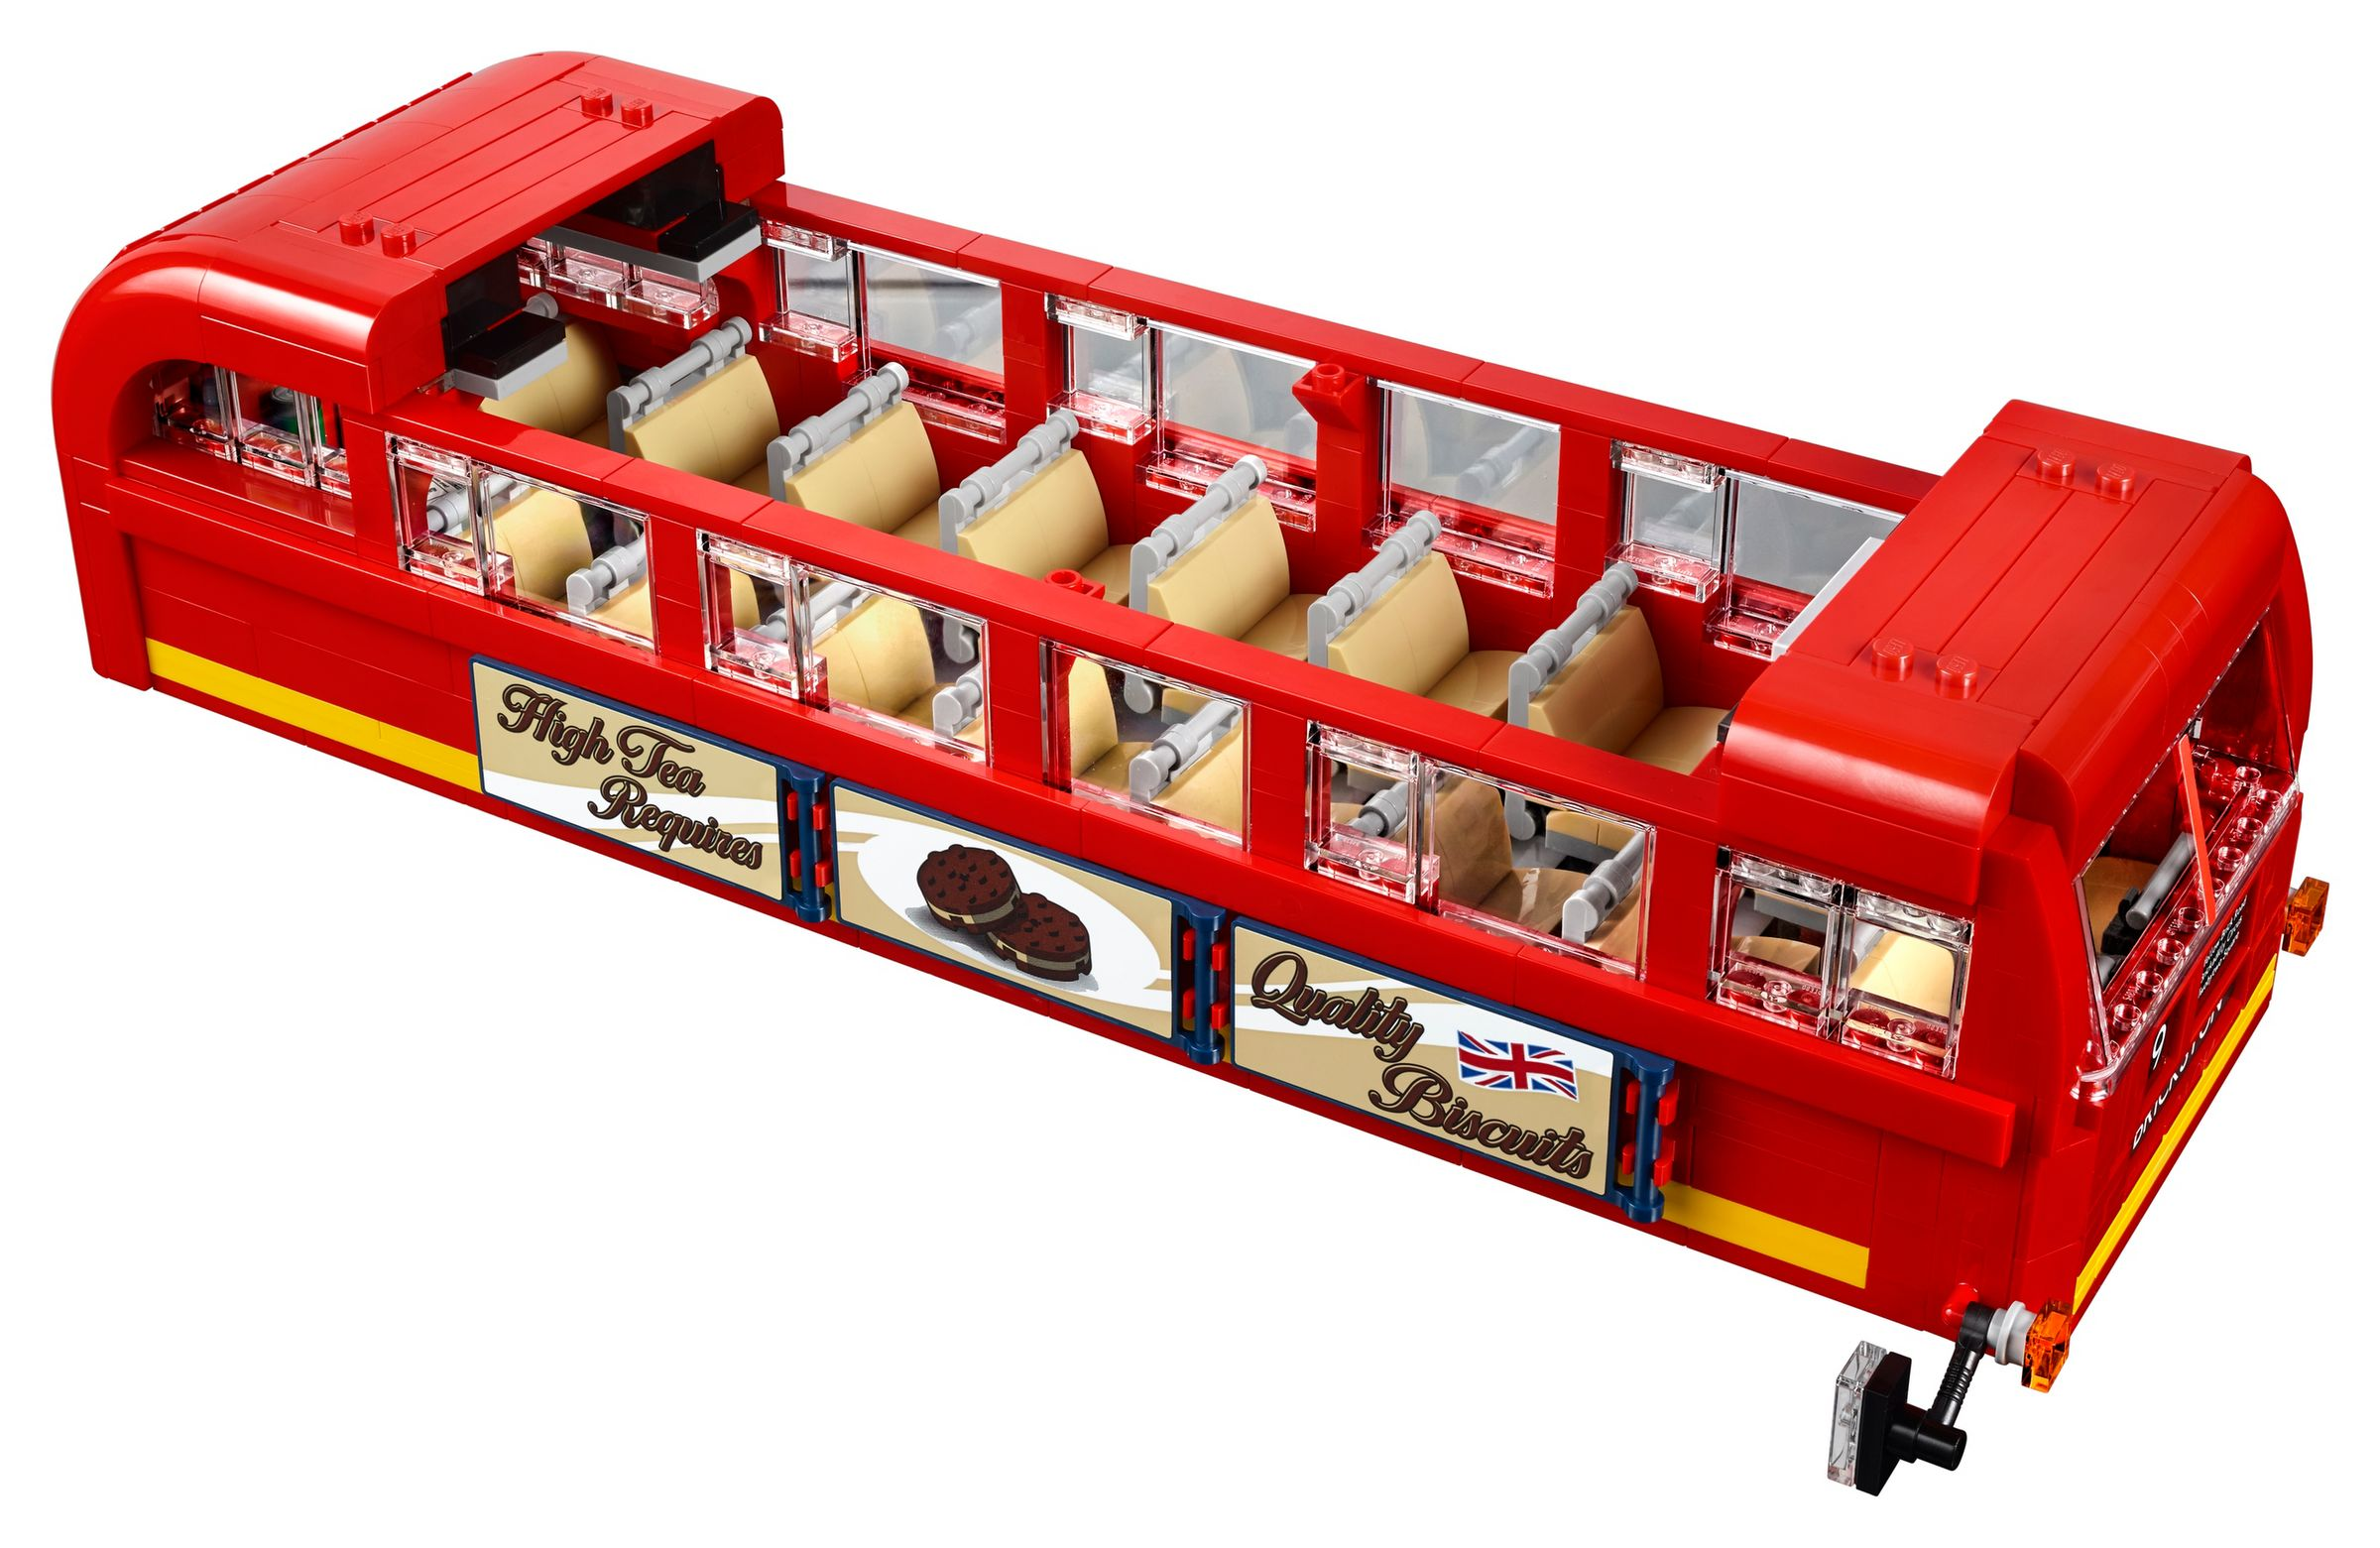 LEGO Advanced Models 10258 Doppeldecker Bus LEGO_10258_alt11.jpg